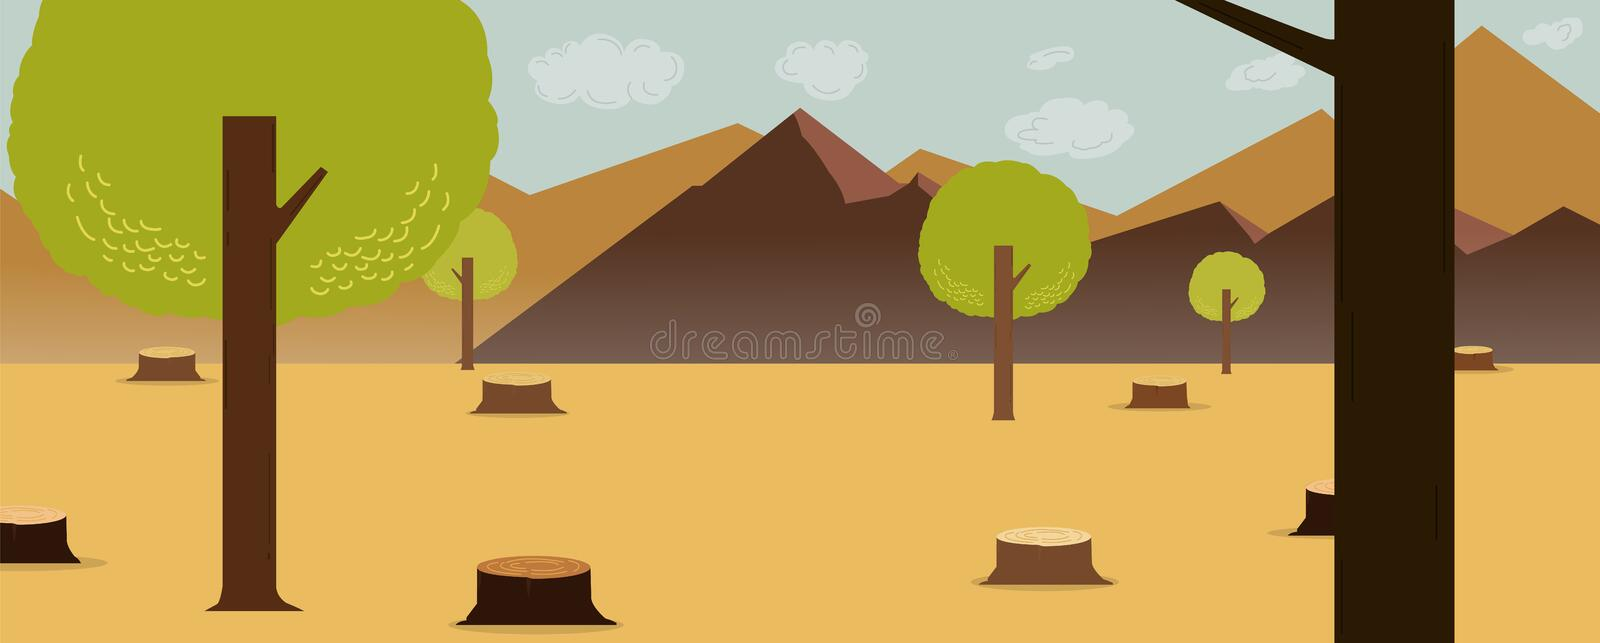 Cartoon nature deforest design with mountains and sky background.vector illustration.Deforest concept. vector illustration